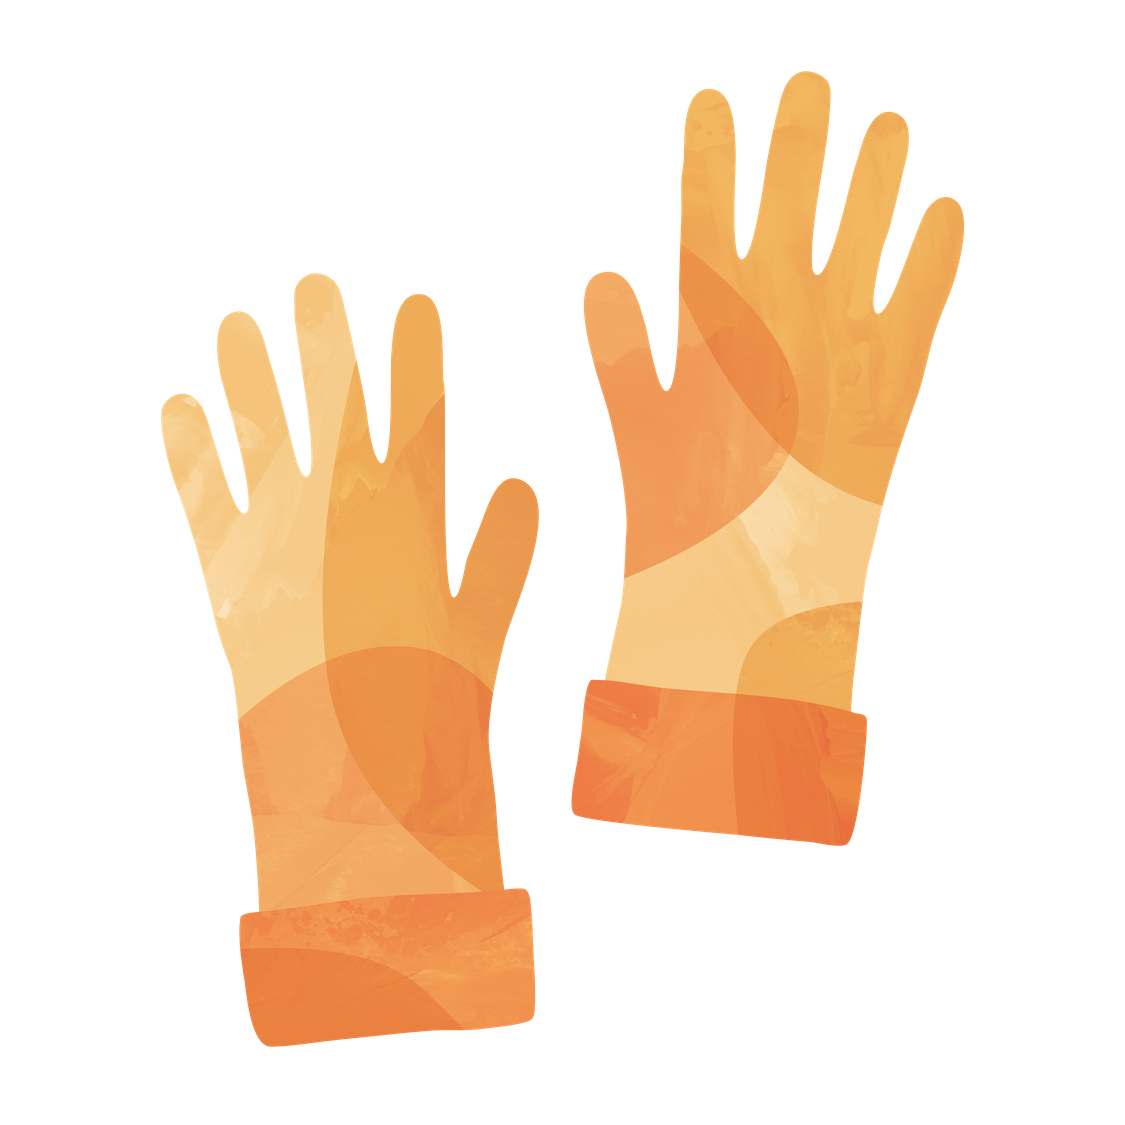 illustration of orange cleaning gloves